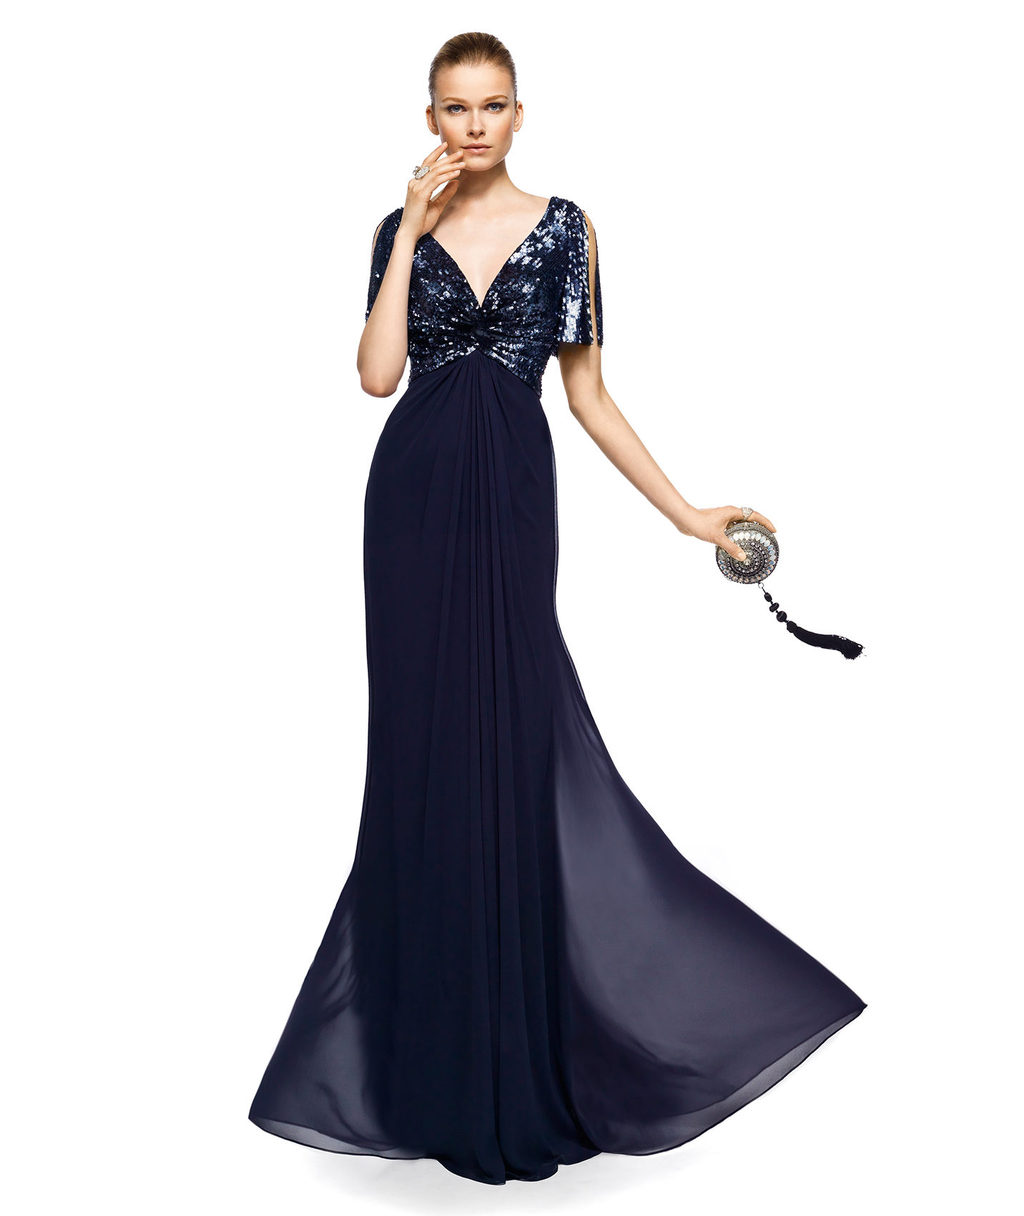 deep navy evening gown for mothers of the bride mothers wedding dresses Deep navy evening gown for mothers of the bride